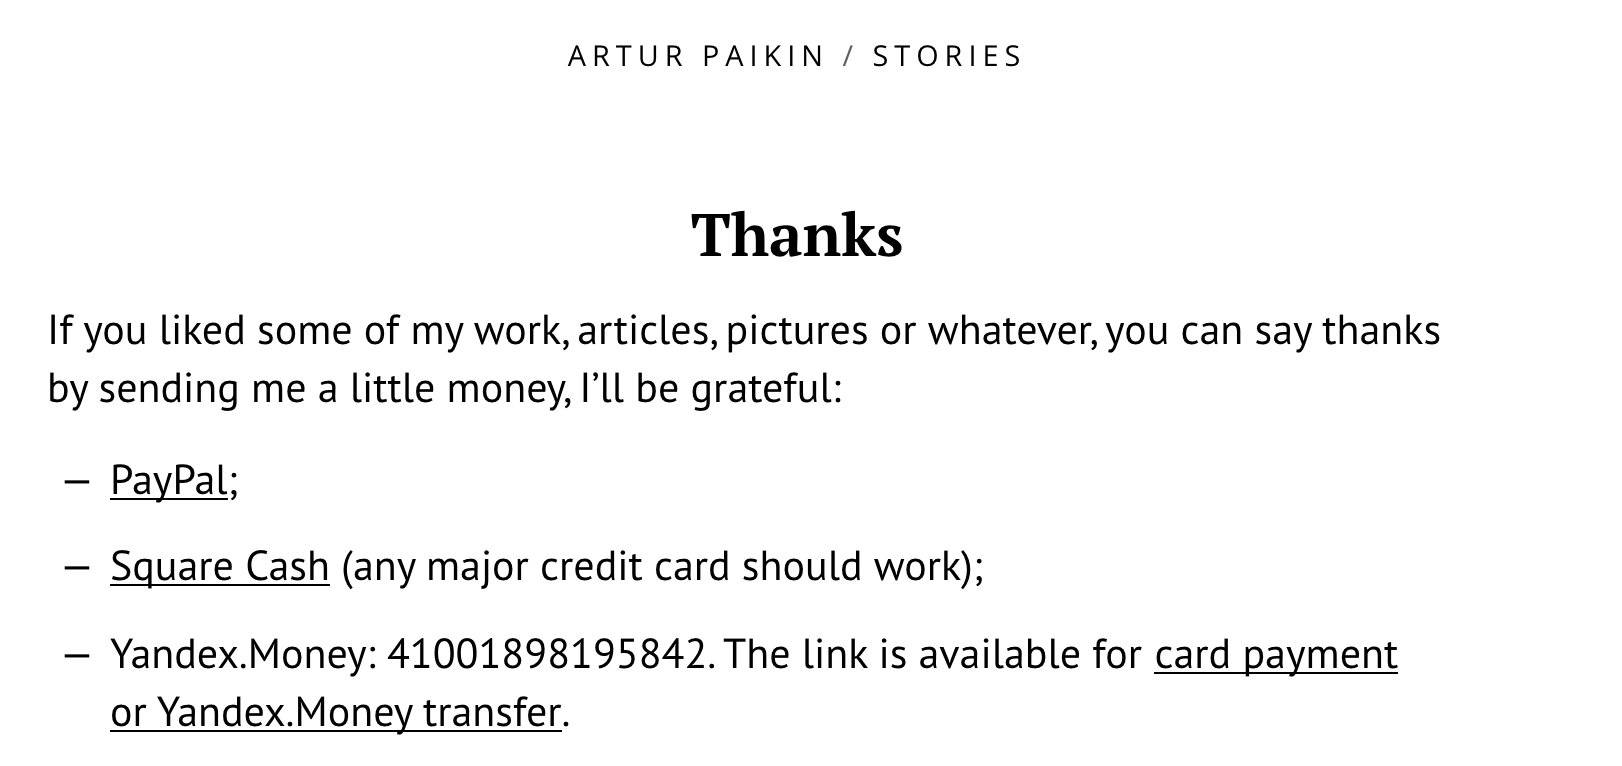 arturpaikin-thanks.png